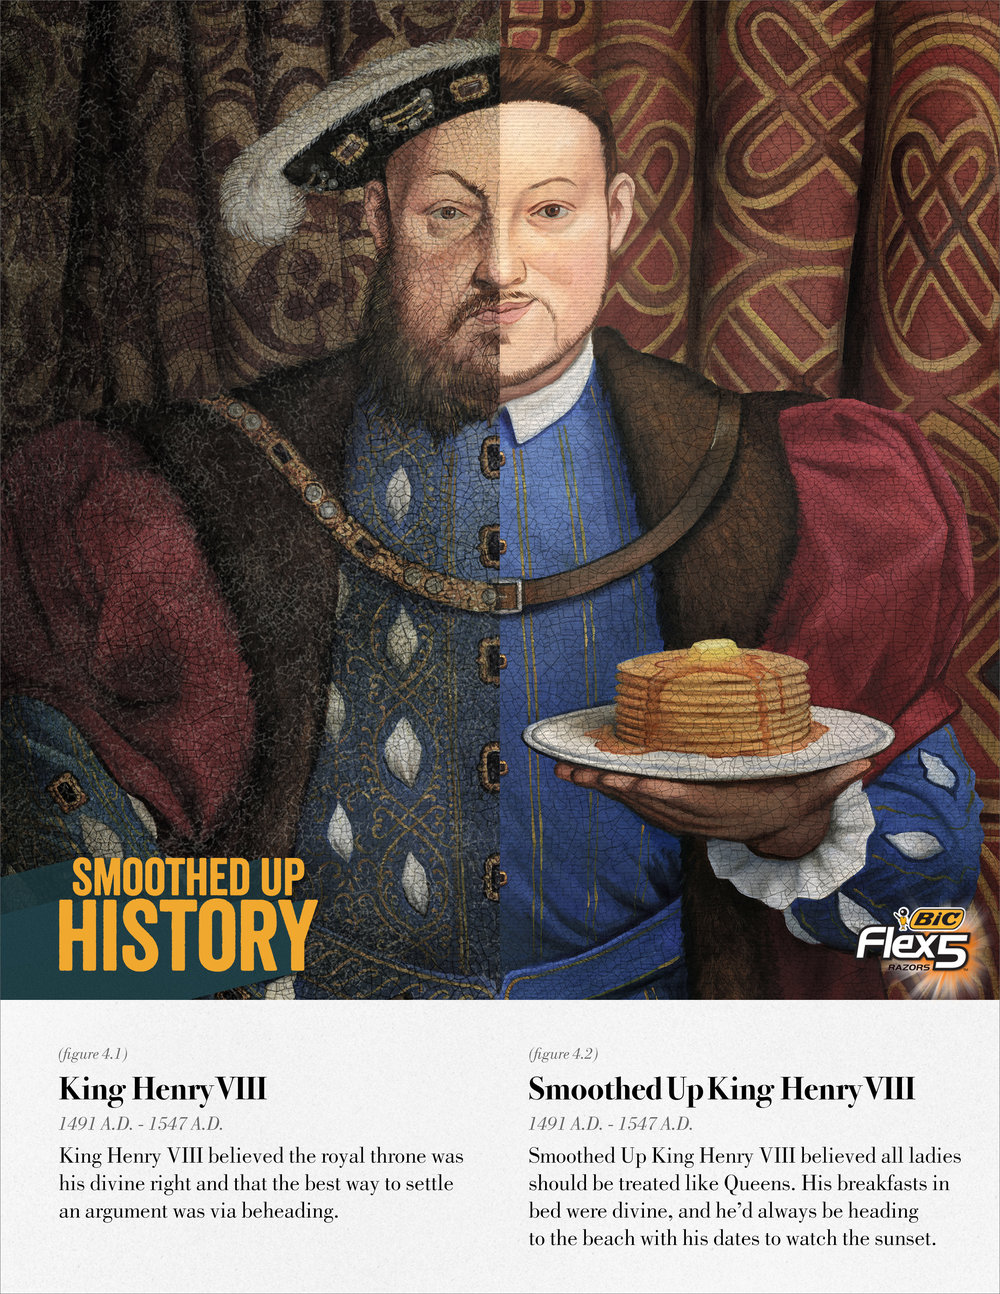 SmoothedUpHistory_Textbook_Layout_0003_King Henry VIII.jpg